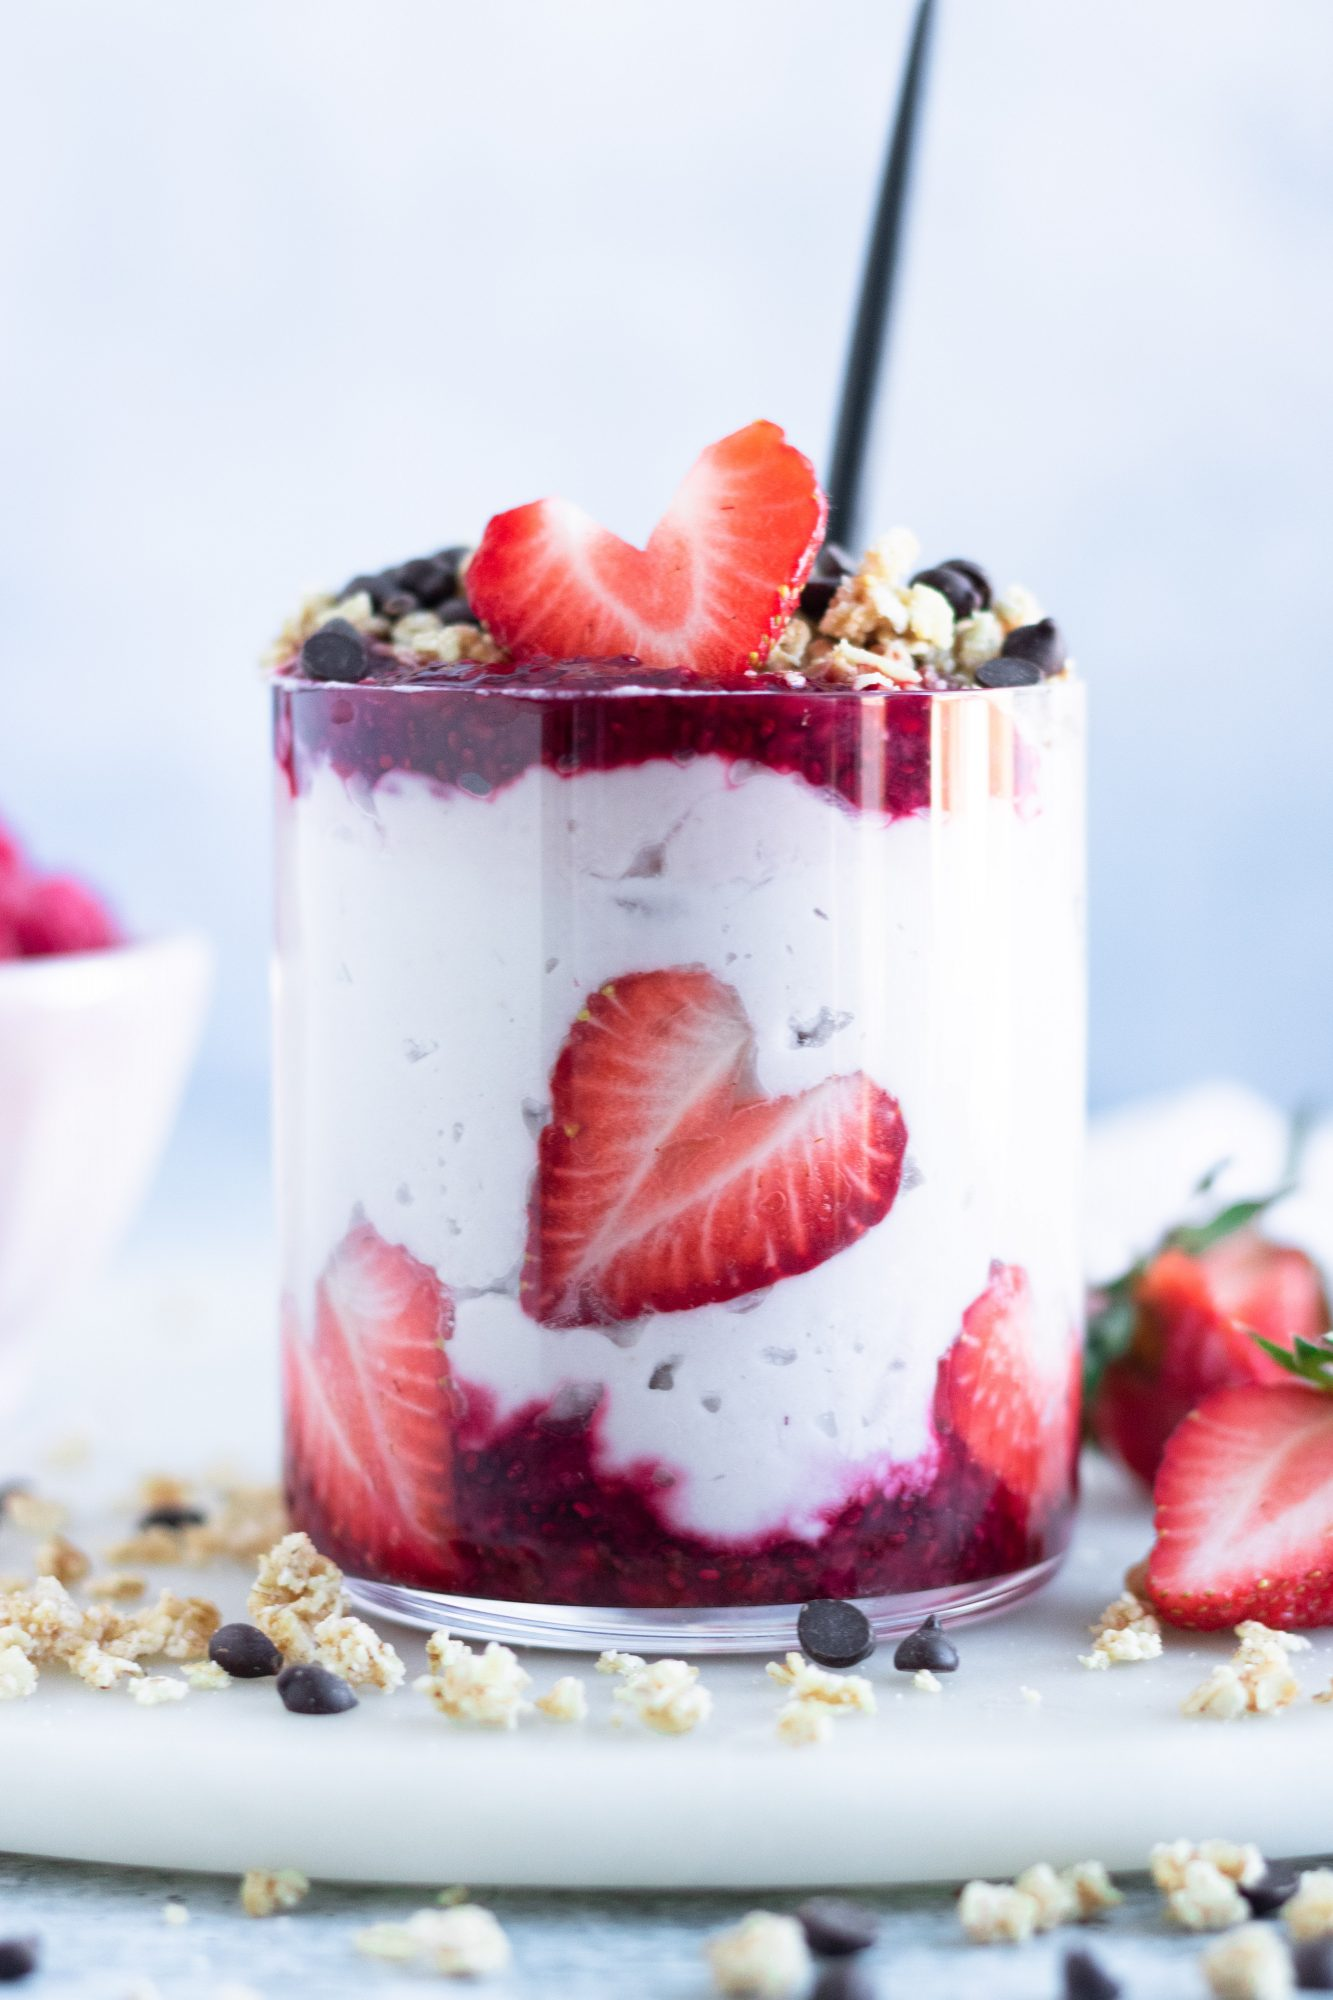 Strawberry Heart Yogurt Parfait